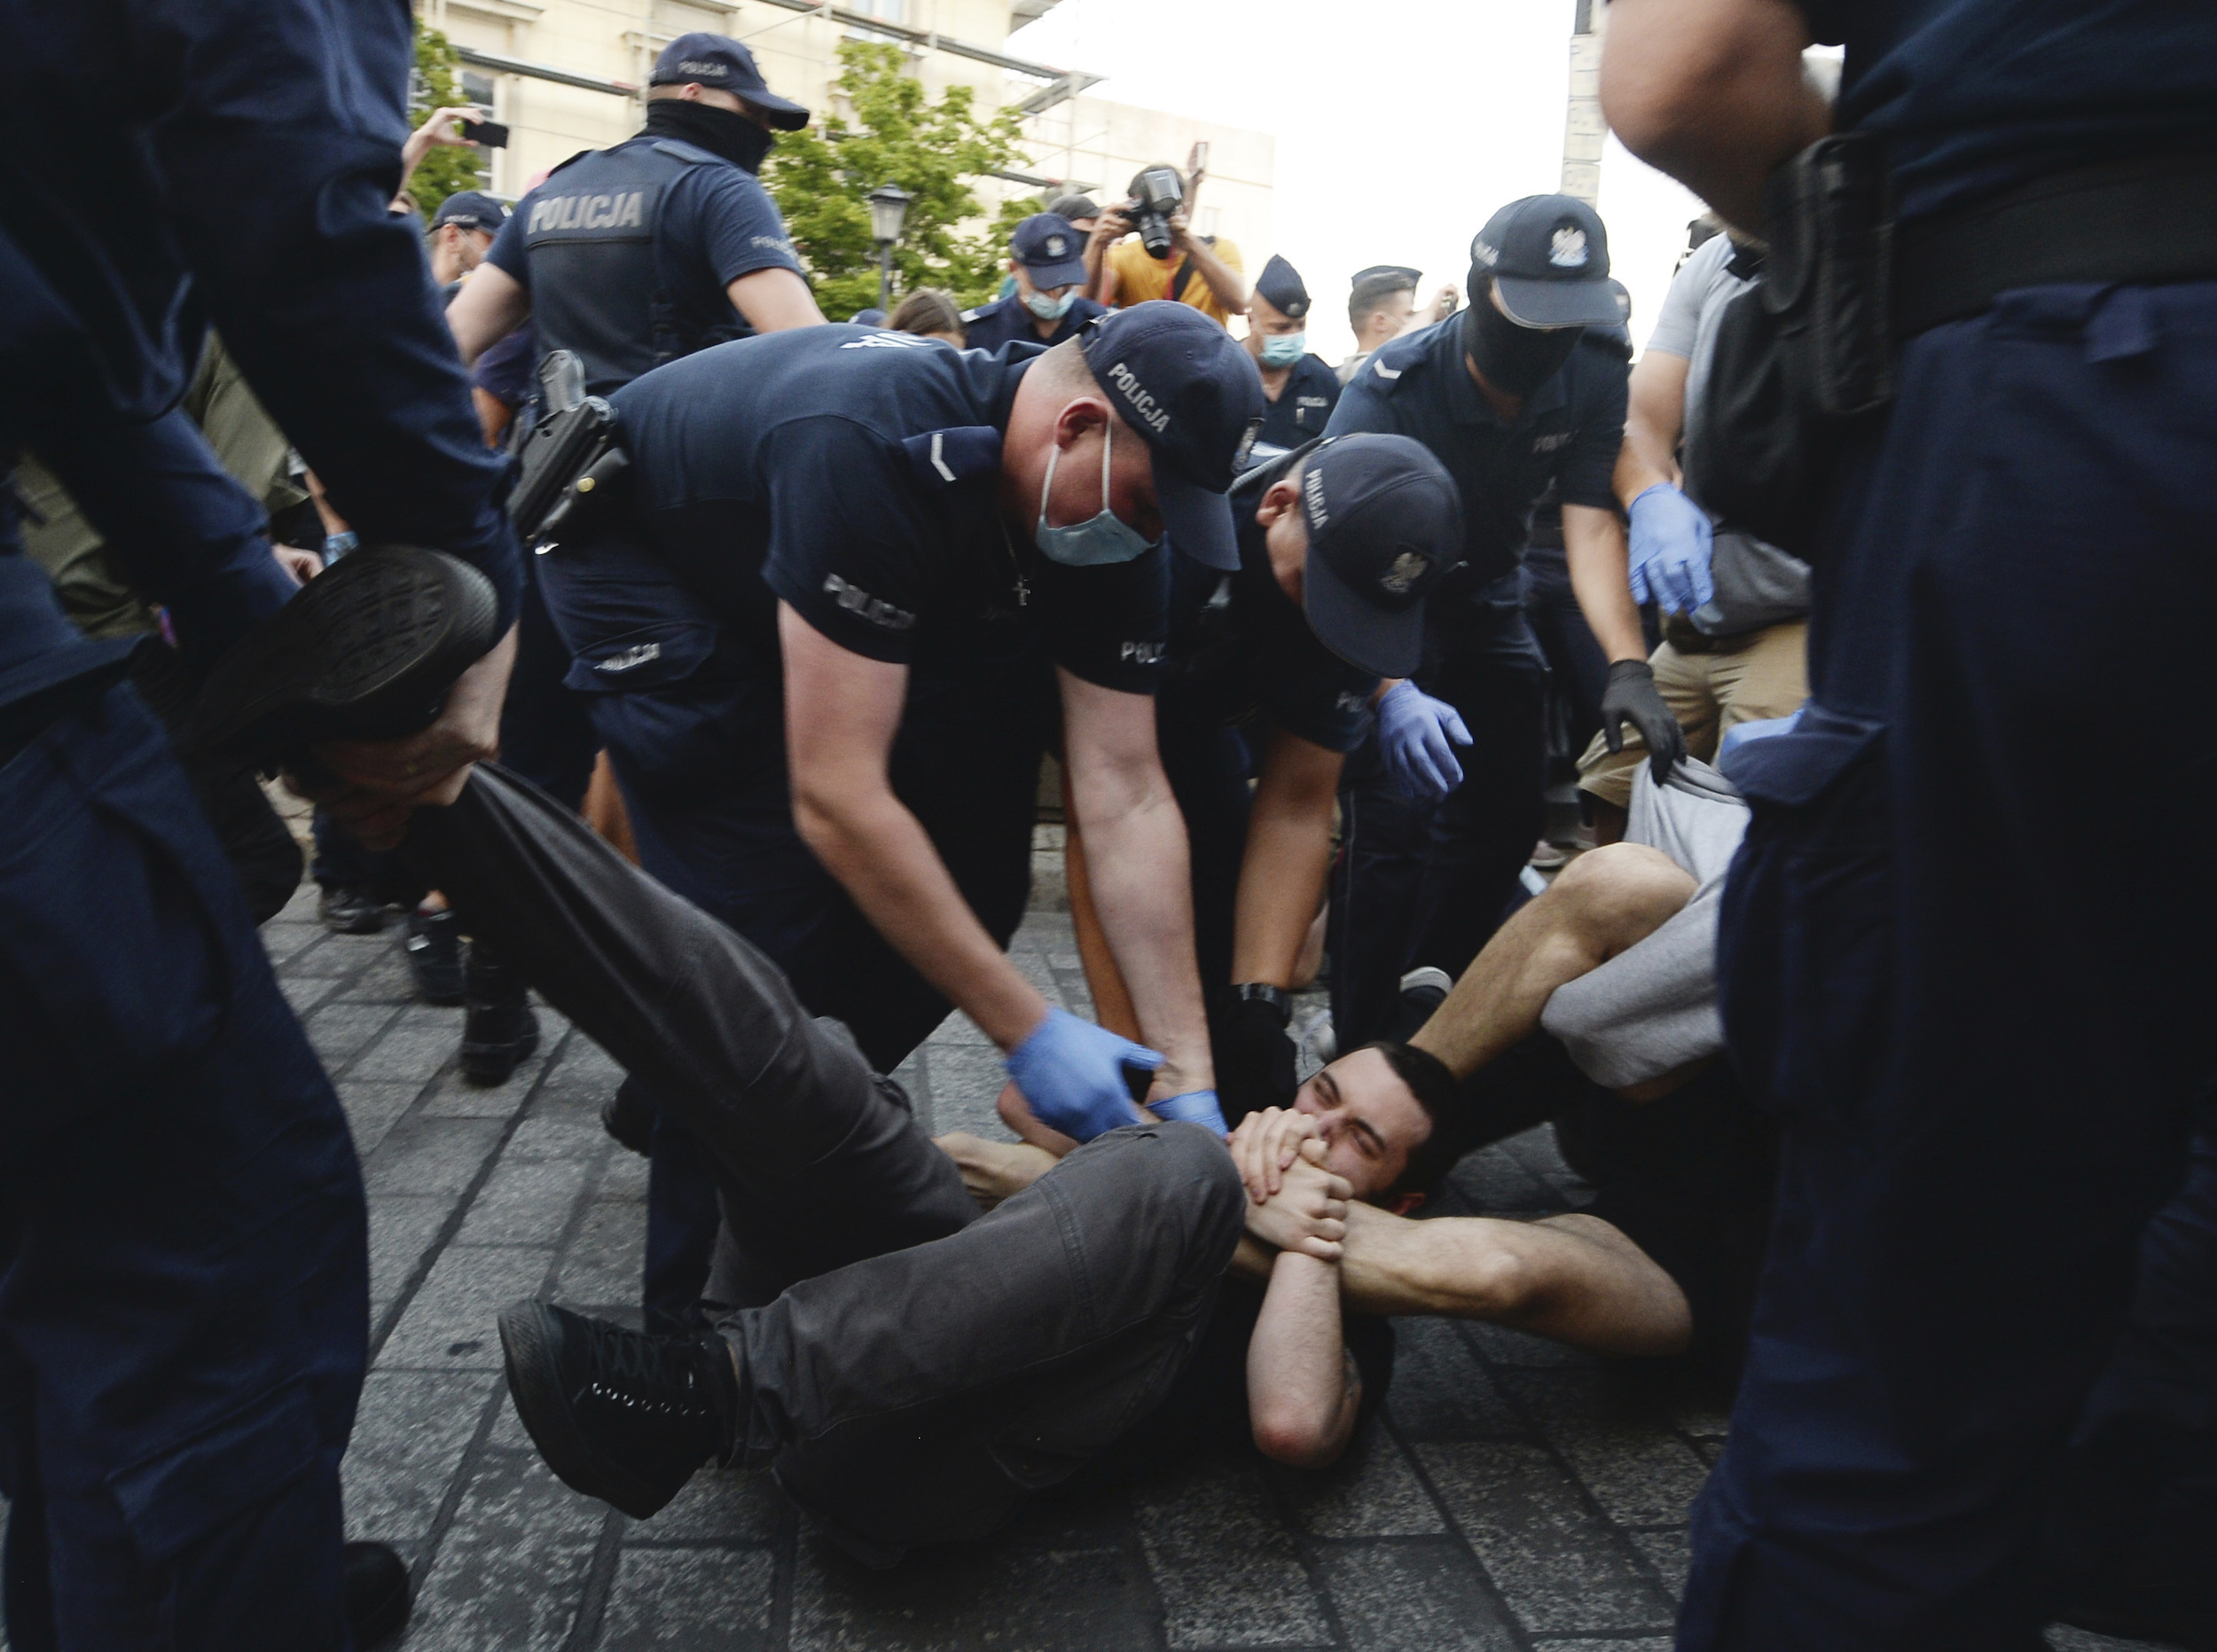 Police scuffle with pro-LGBT protesters angry at the arrest of an LGBT activist in Warsaw, Poland on Aug. 7, 2020.